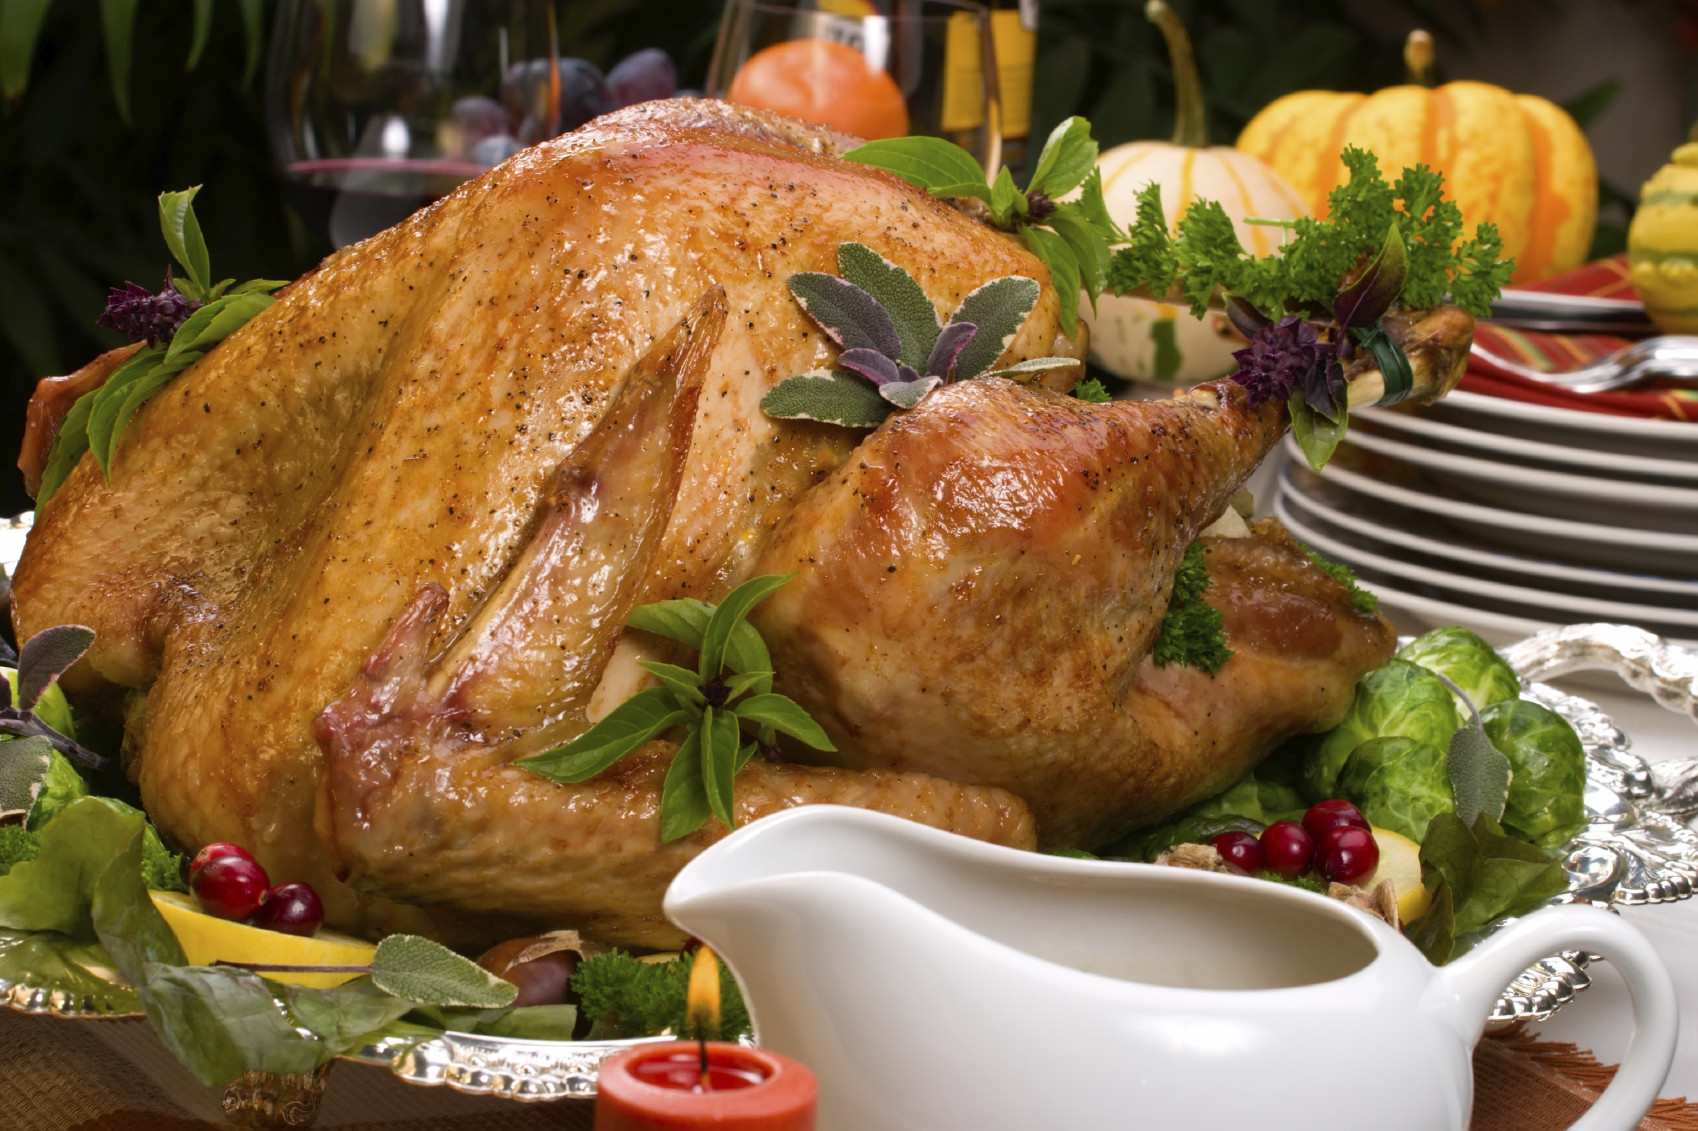 Biggest Thanksgiving Turkey  Tips for preparing your holiday turkey – News from